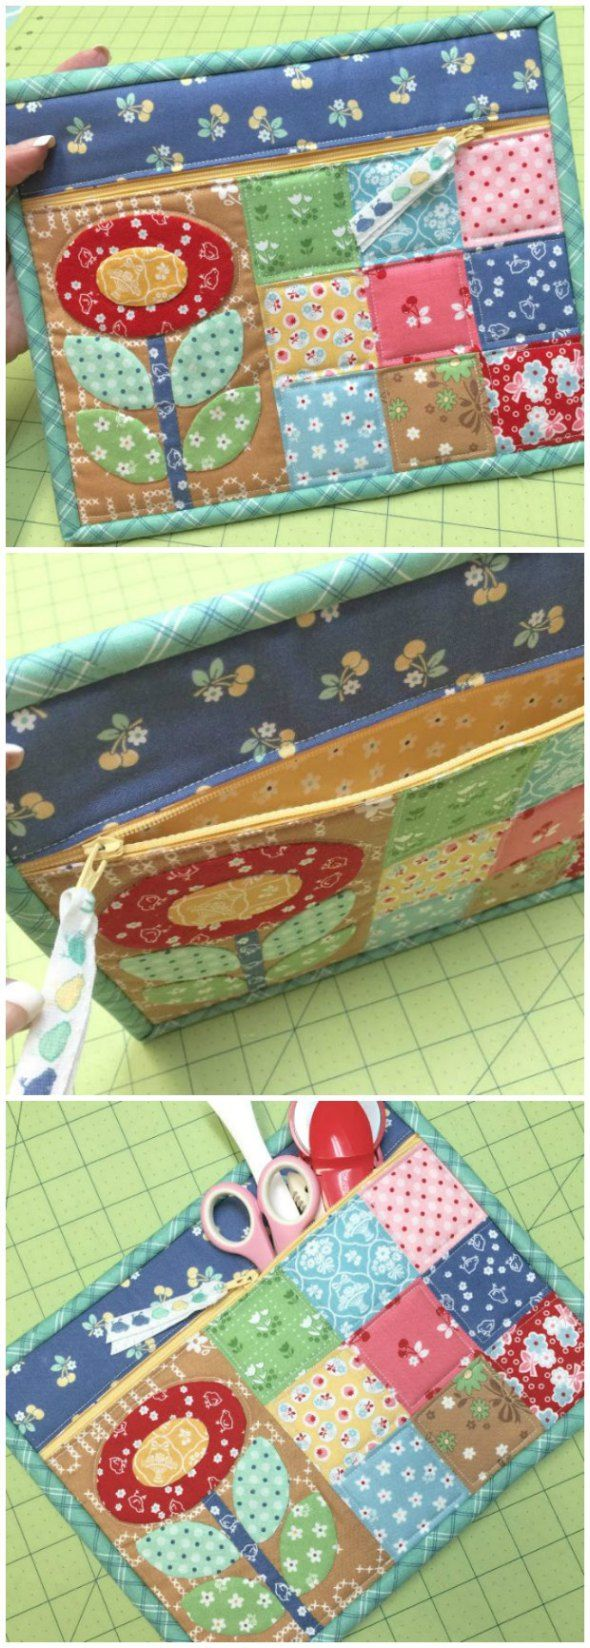 Innovative and very pretty way to sew a simple zipper pouch. This method makes sewing the zipper super-easy and the binding is so cute too!